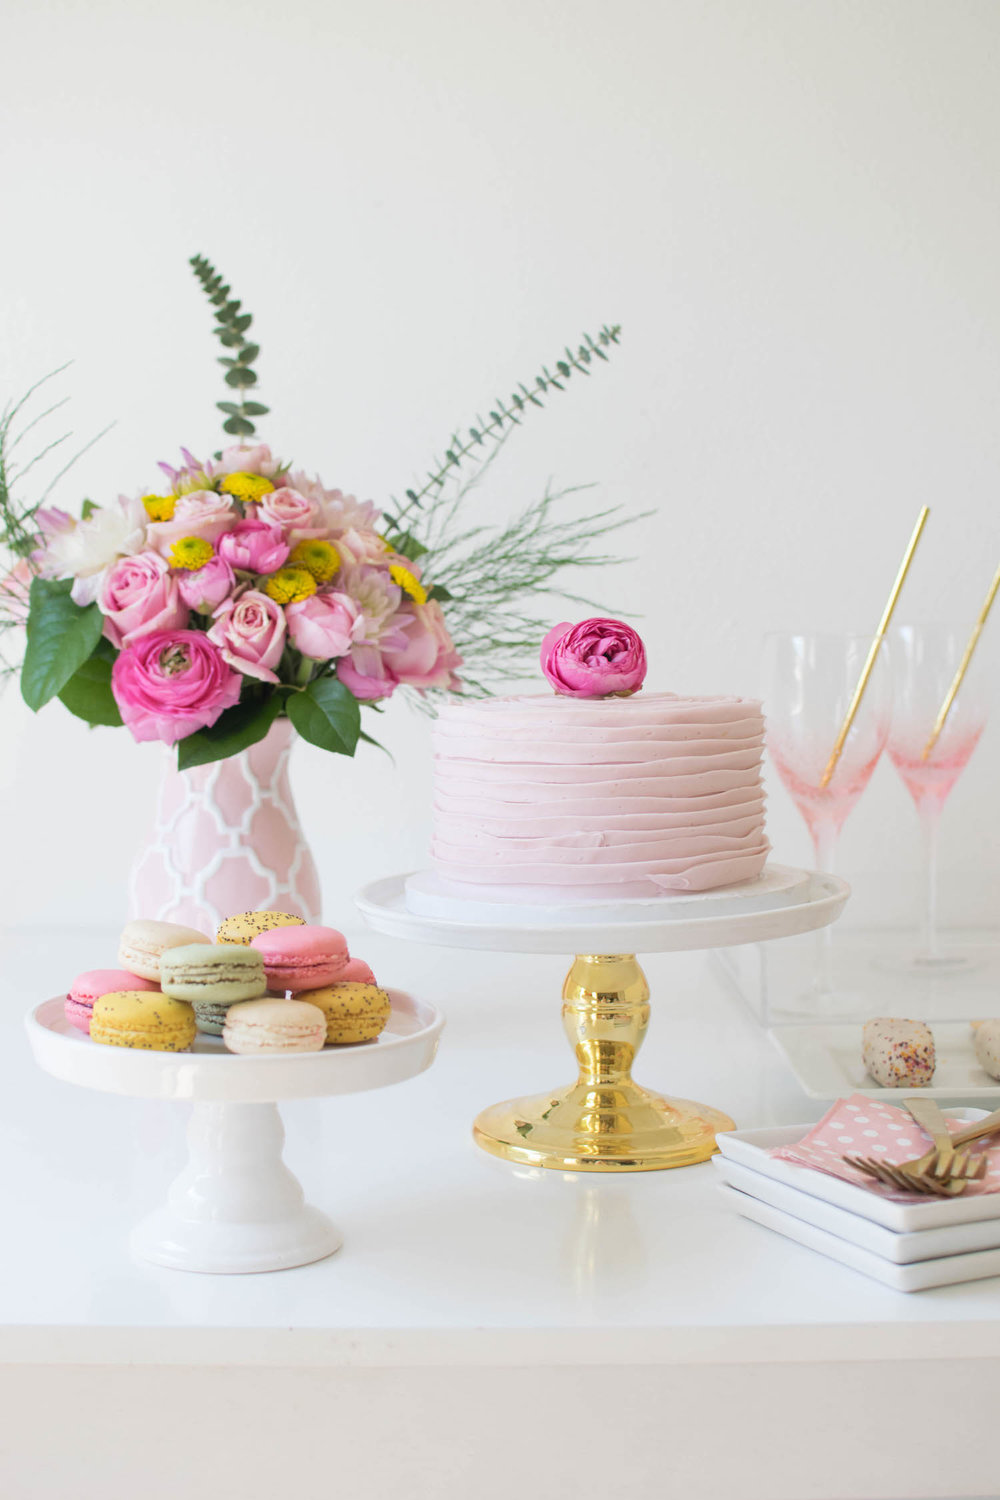 creative-diy-wedding-ideas-spring-brunch-tablescape.jpg